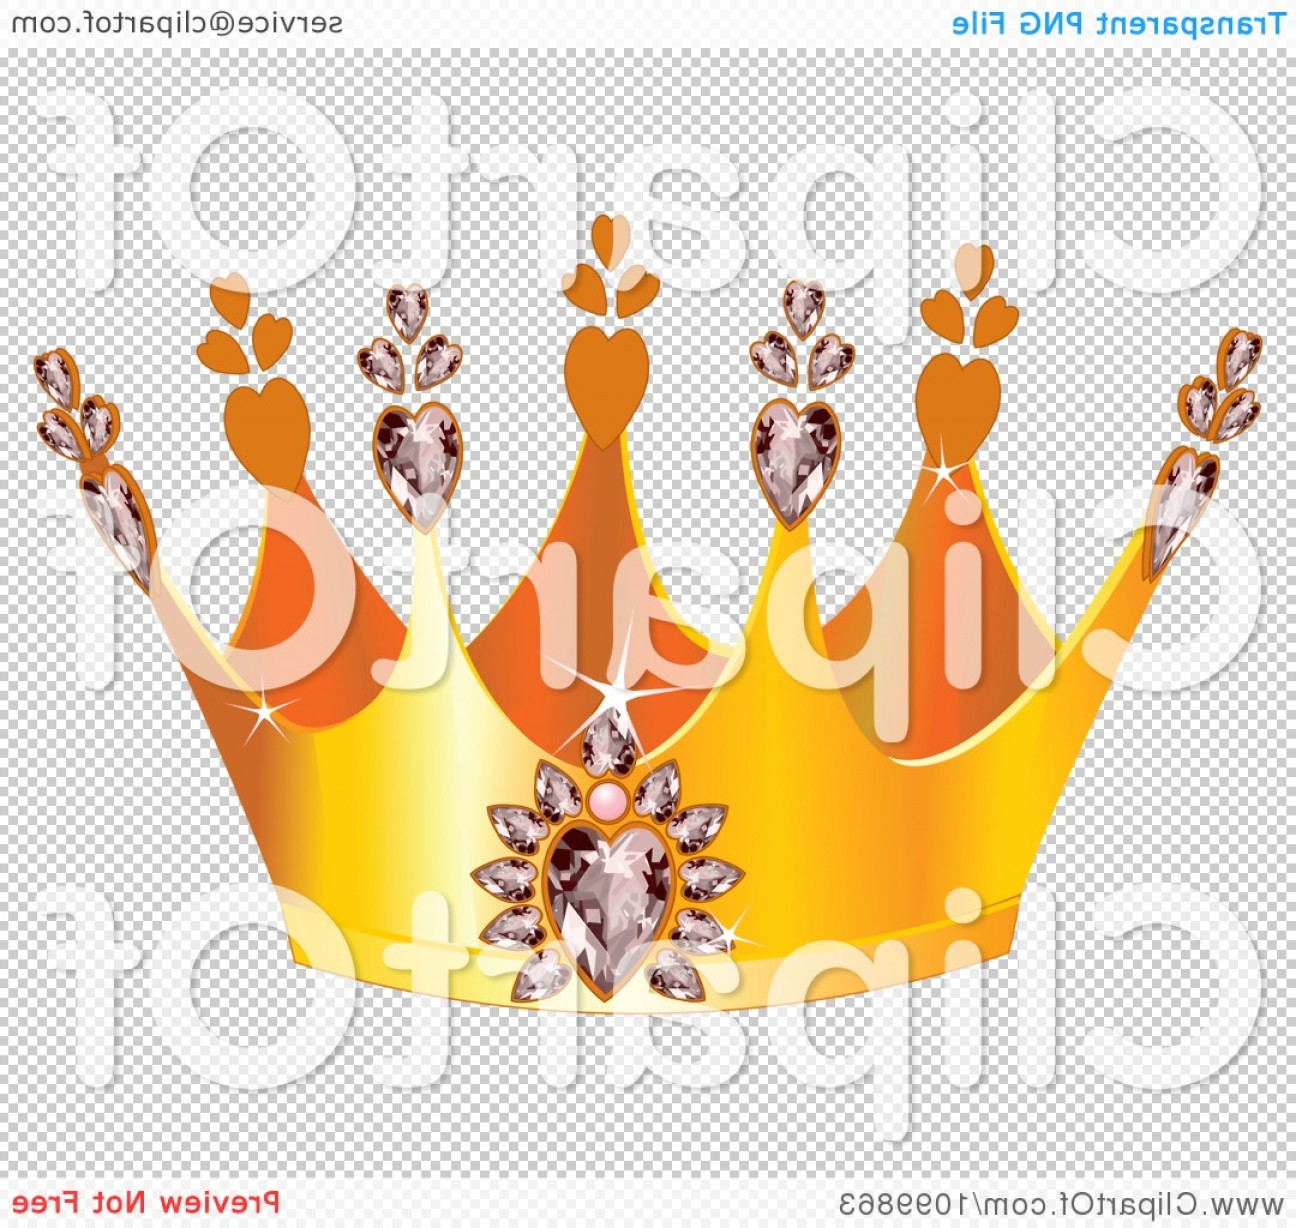 Transparent Queen Crown Vector: Golden Queens Crown With Diamond Hearts